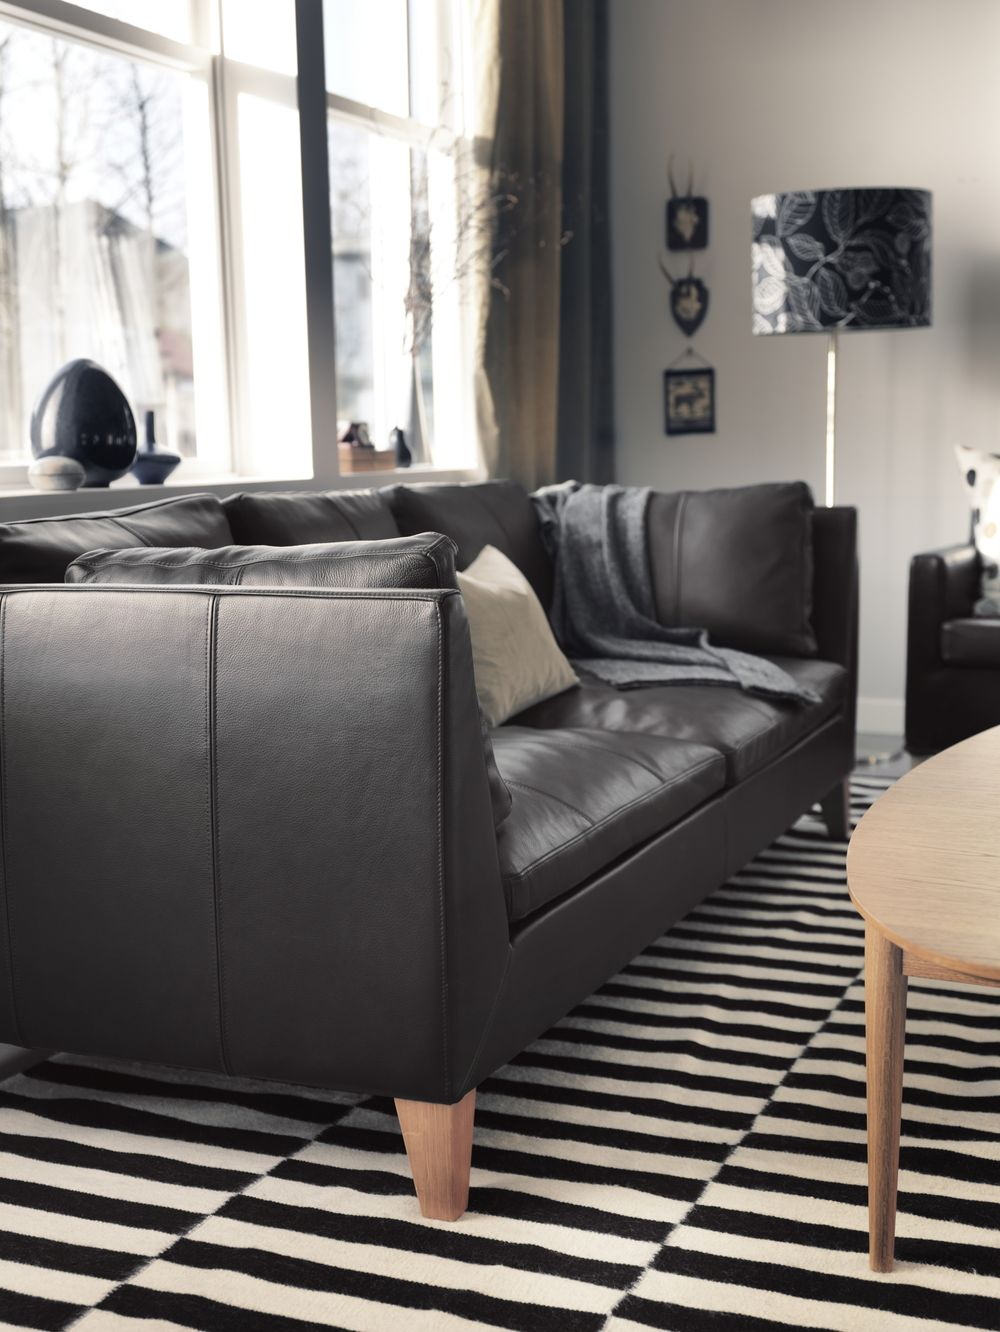 Share for Stockholm sofa ikea